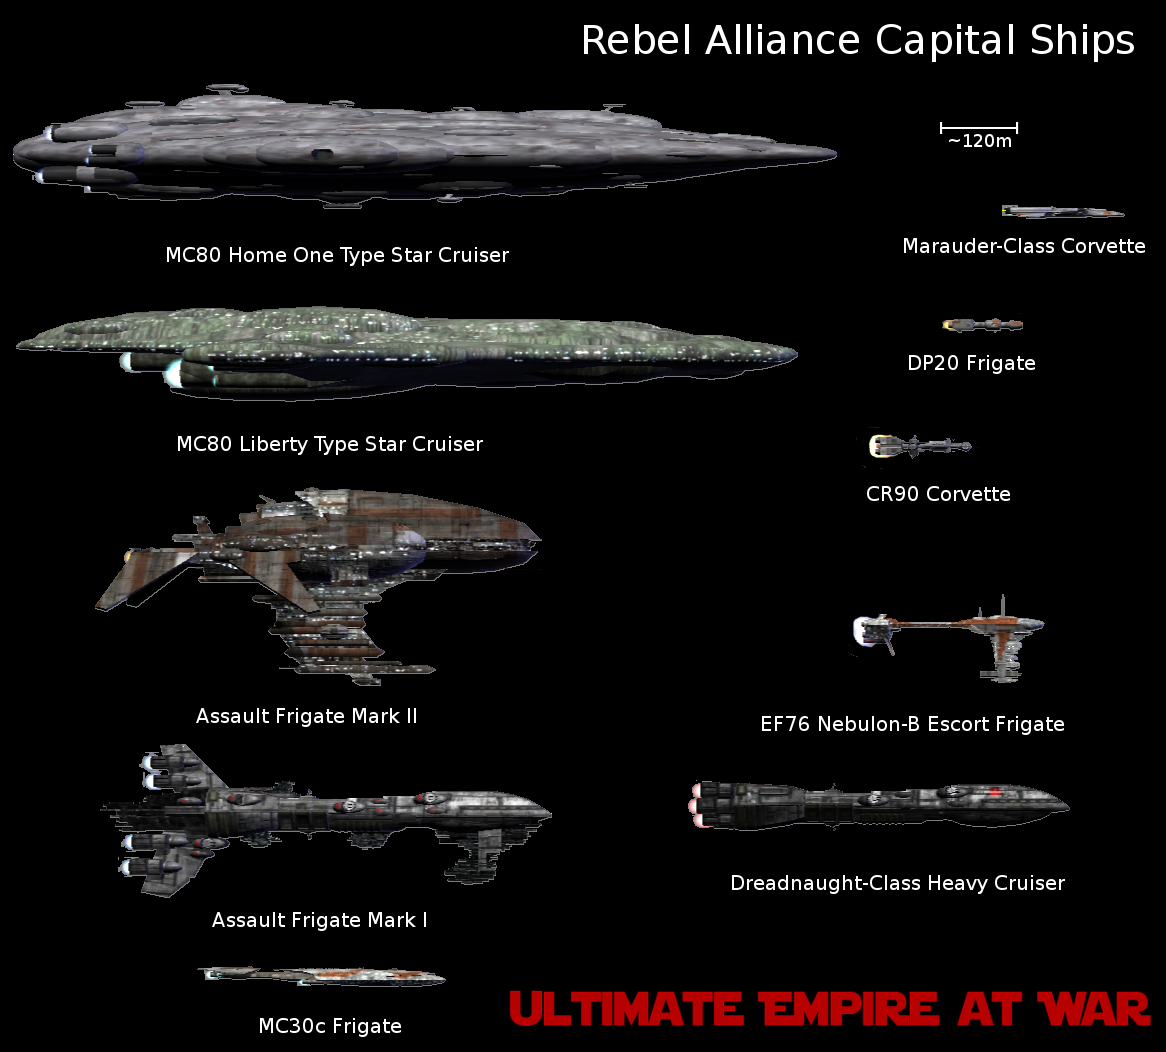 Rebel Alliance Capital Ships image - Ultimate Empire at ...